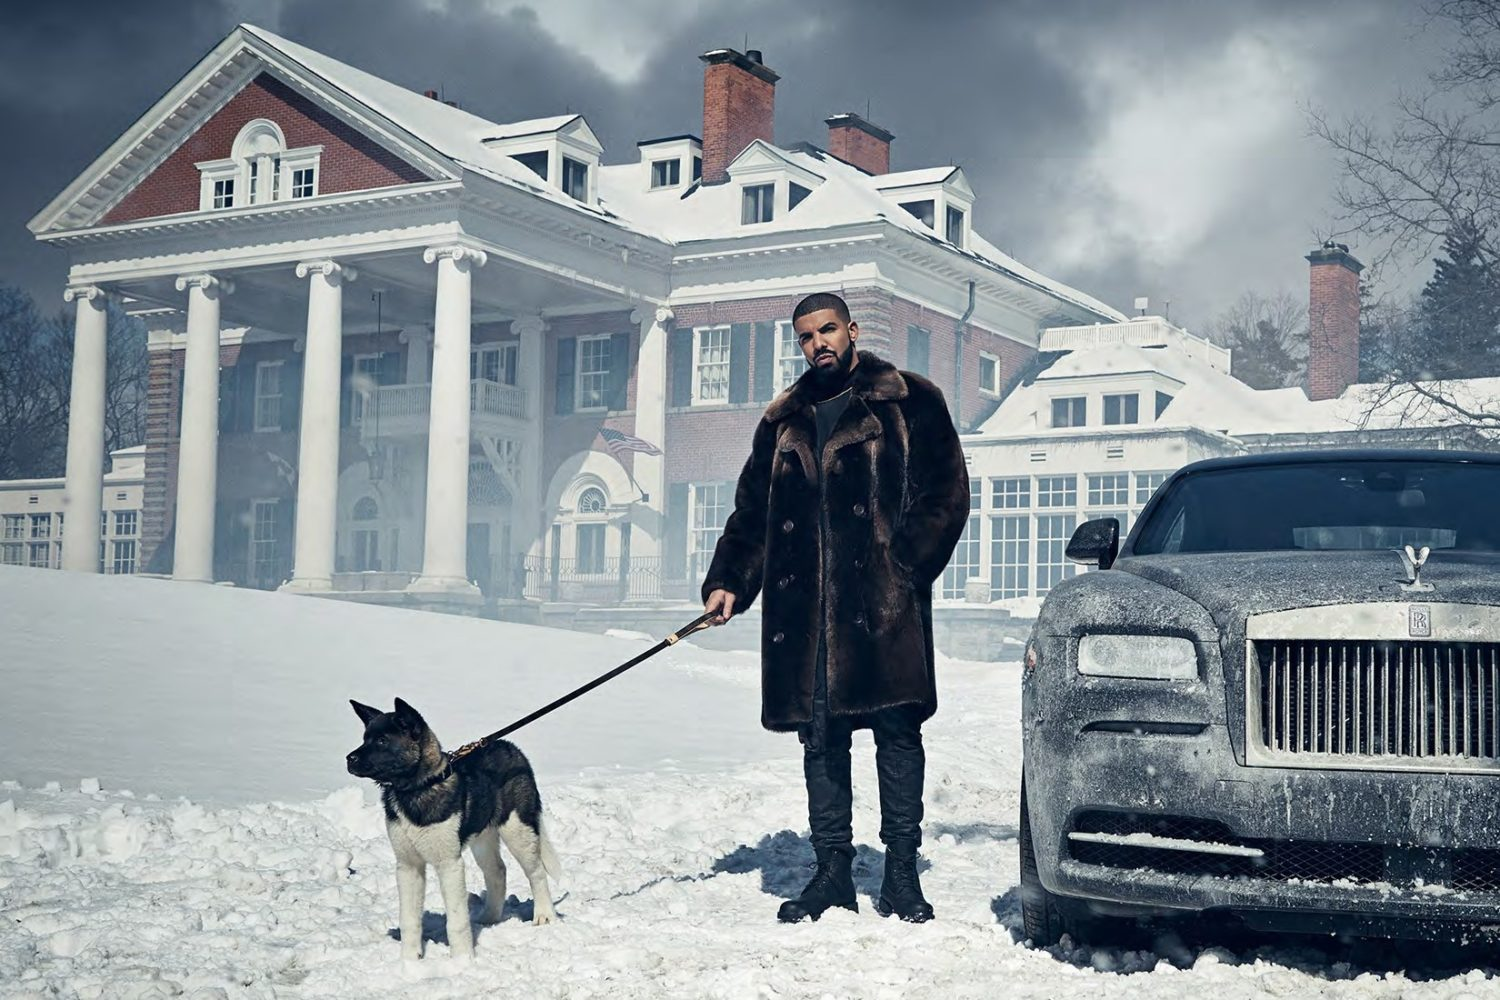 Drake's new album 'Views' is now streaming everywhere